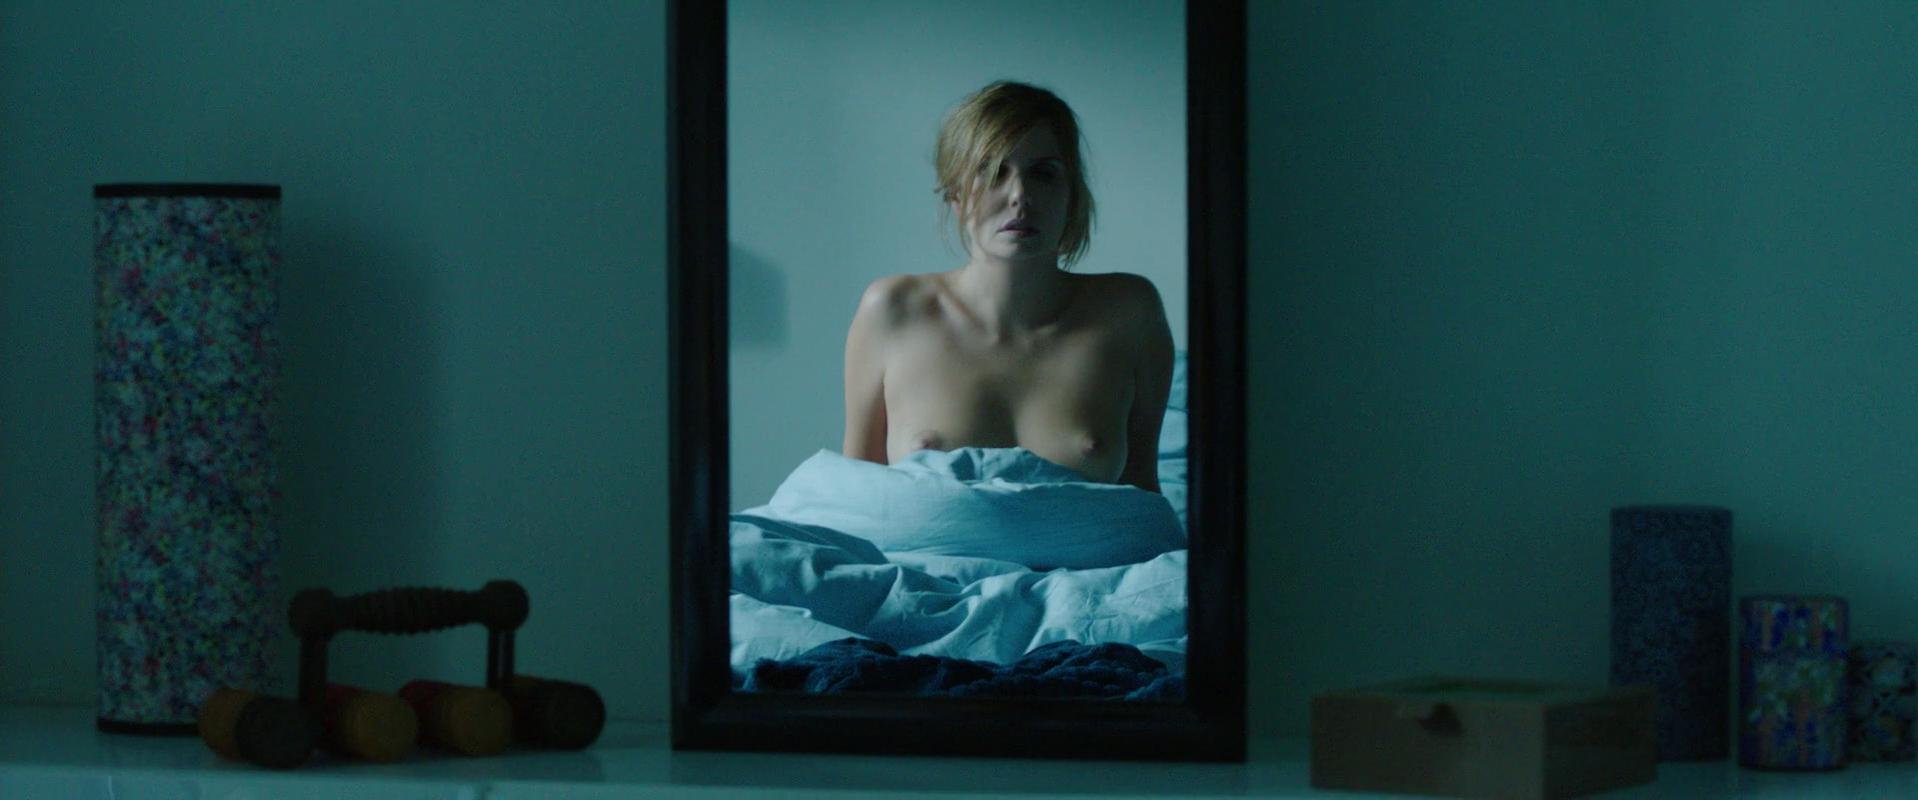 Laurence Arne nude - A coup sur (2014)